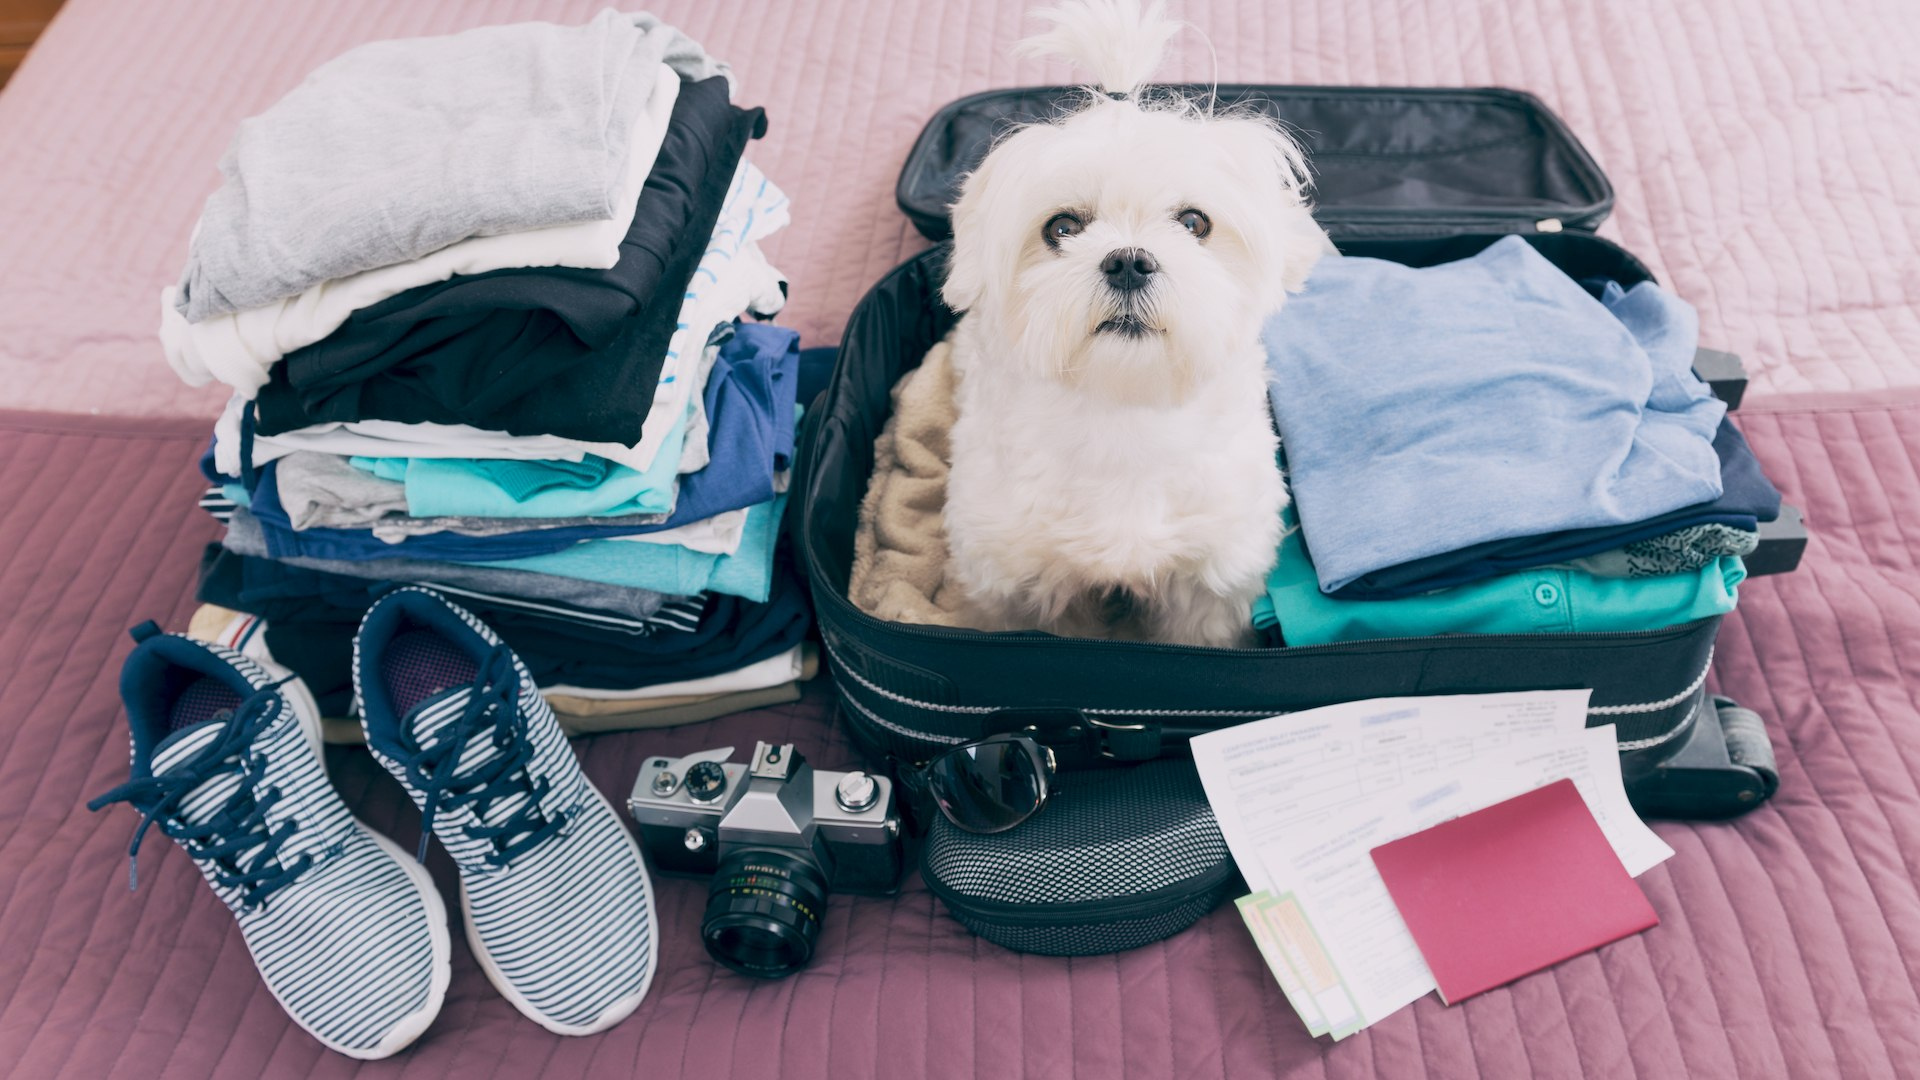 Sedating a pet for air travel